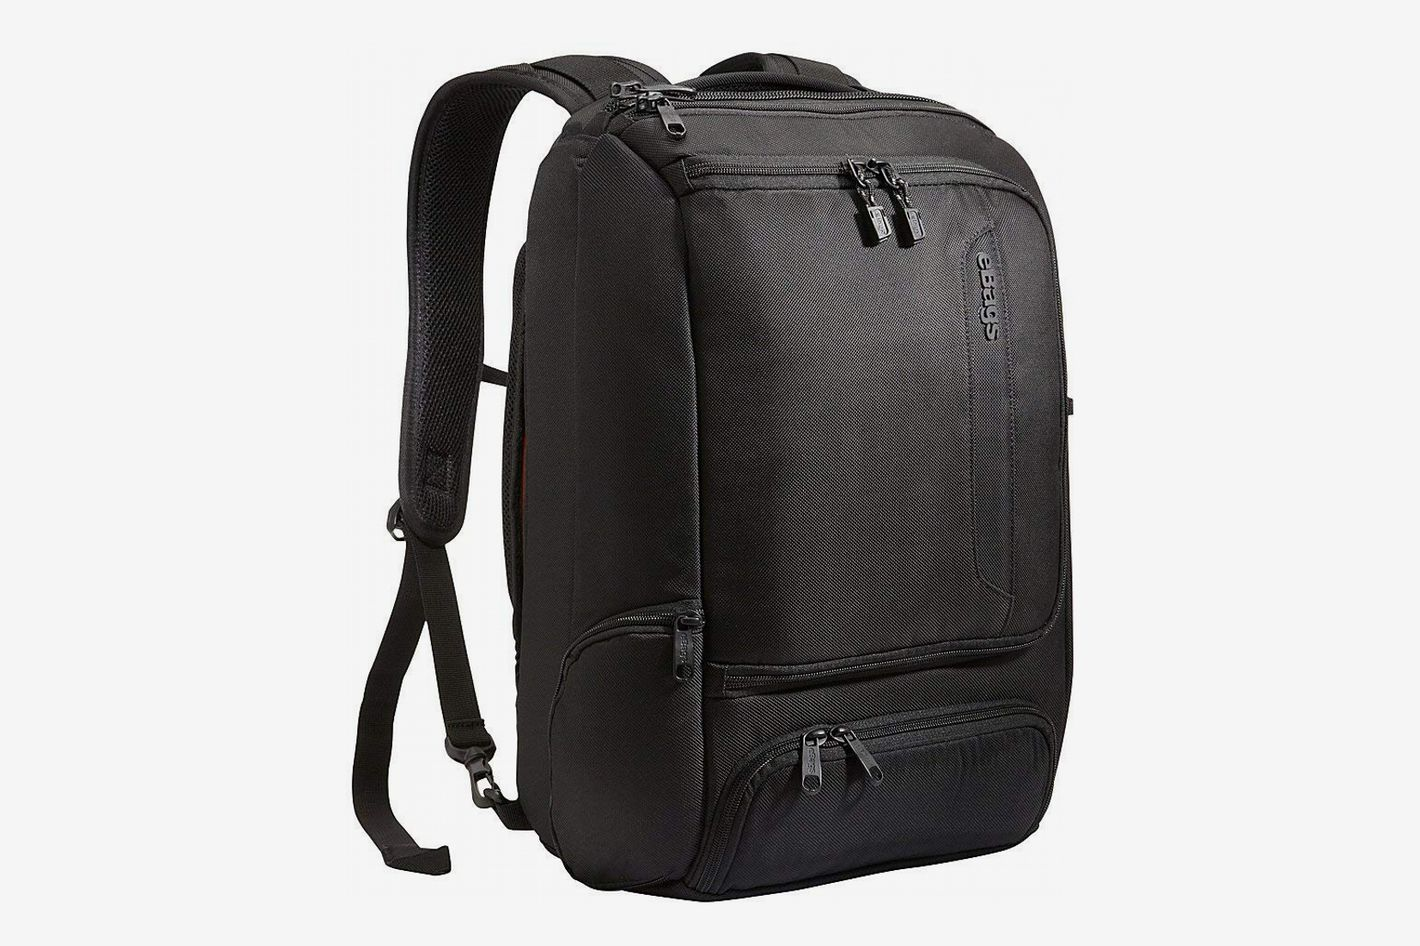 04305bd26c41 The 14 Best Laptop Backpacks on Amazon 2019